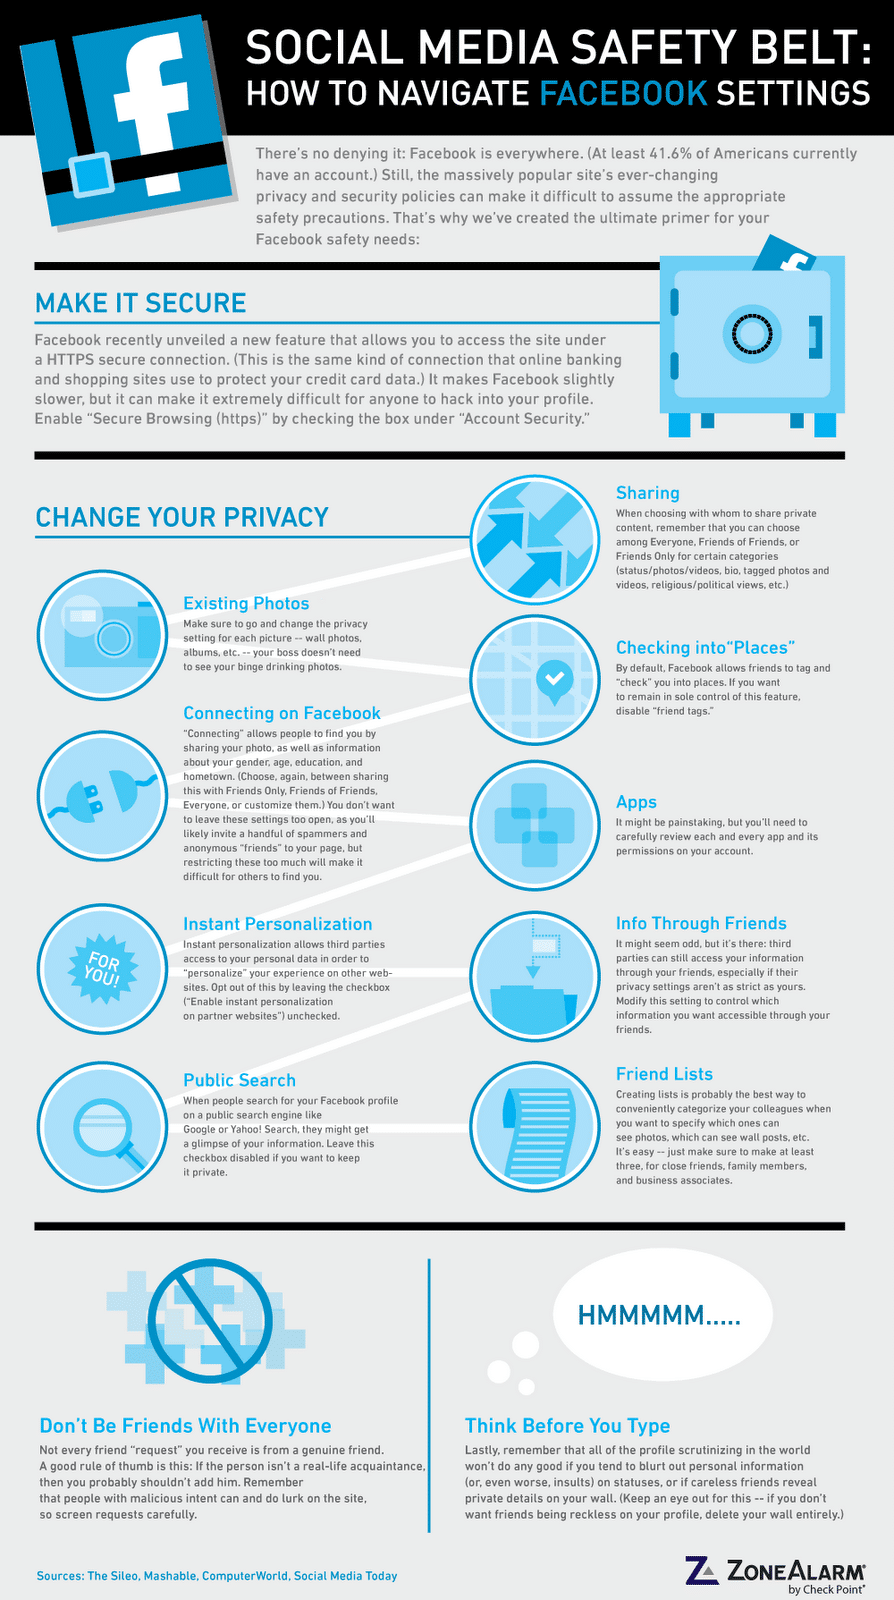 Facebook Security: Simple Guide To Staying Safe [Infographic]